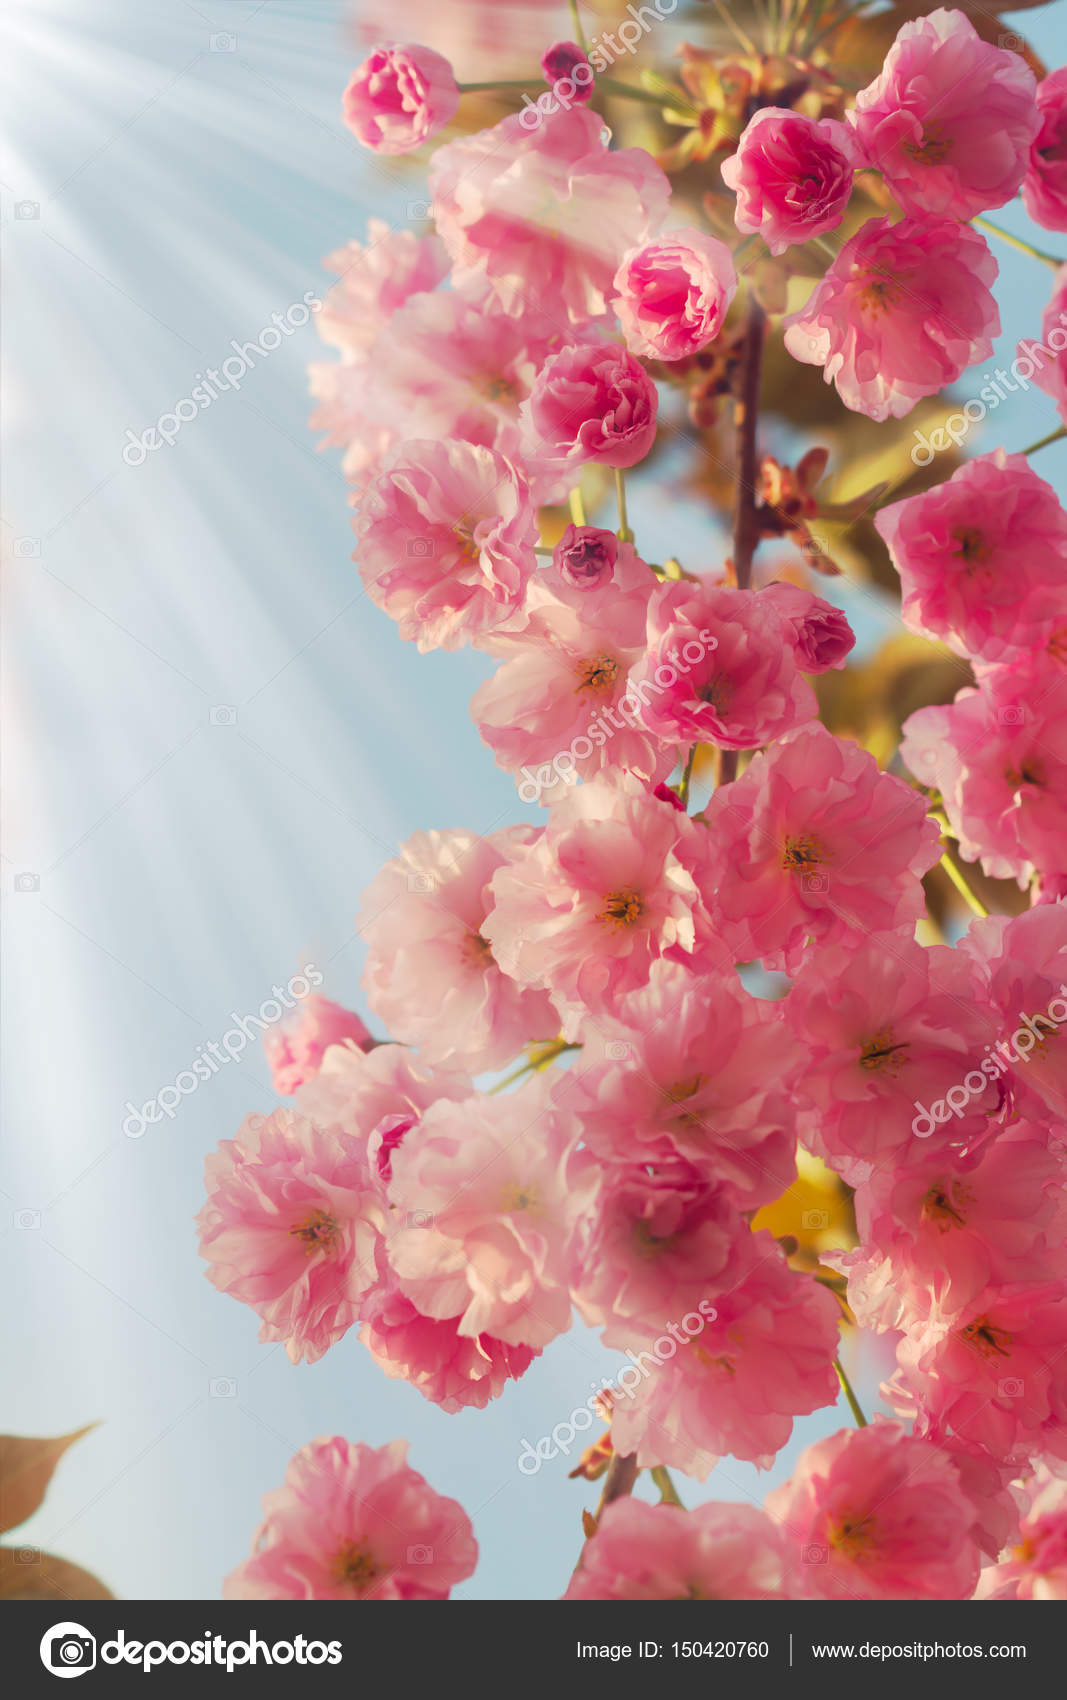 Beautiful Cherry Tree Blossoms In Full Bloom At Spring Amazing Pink